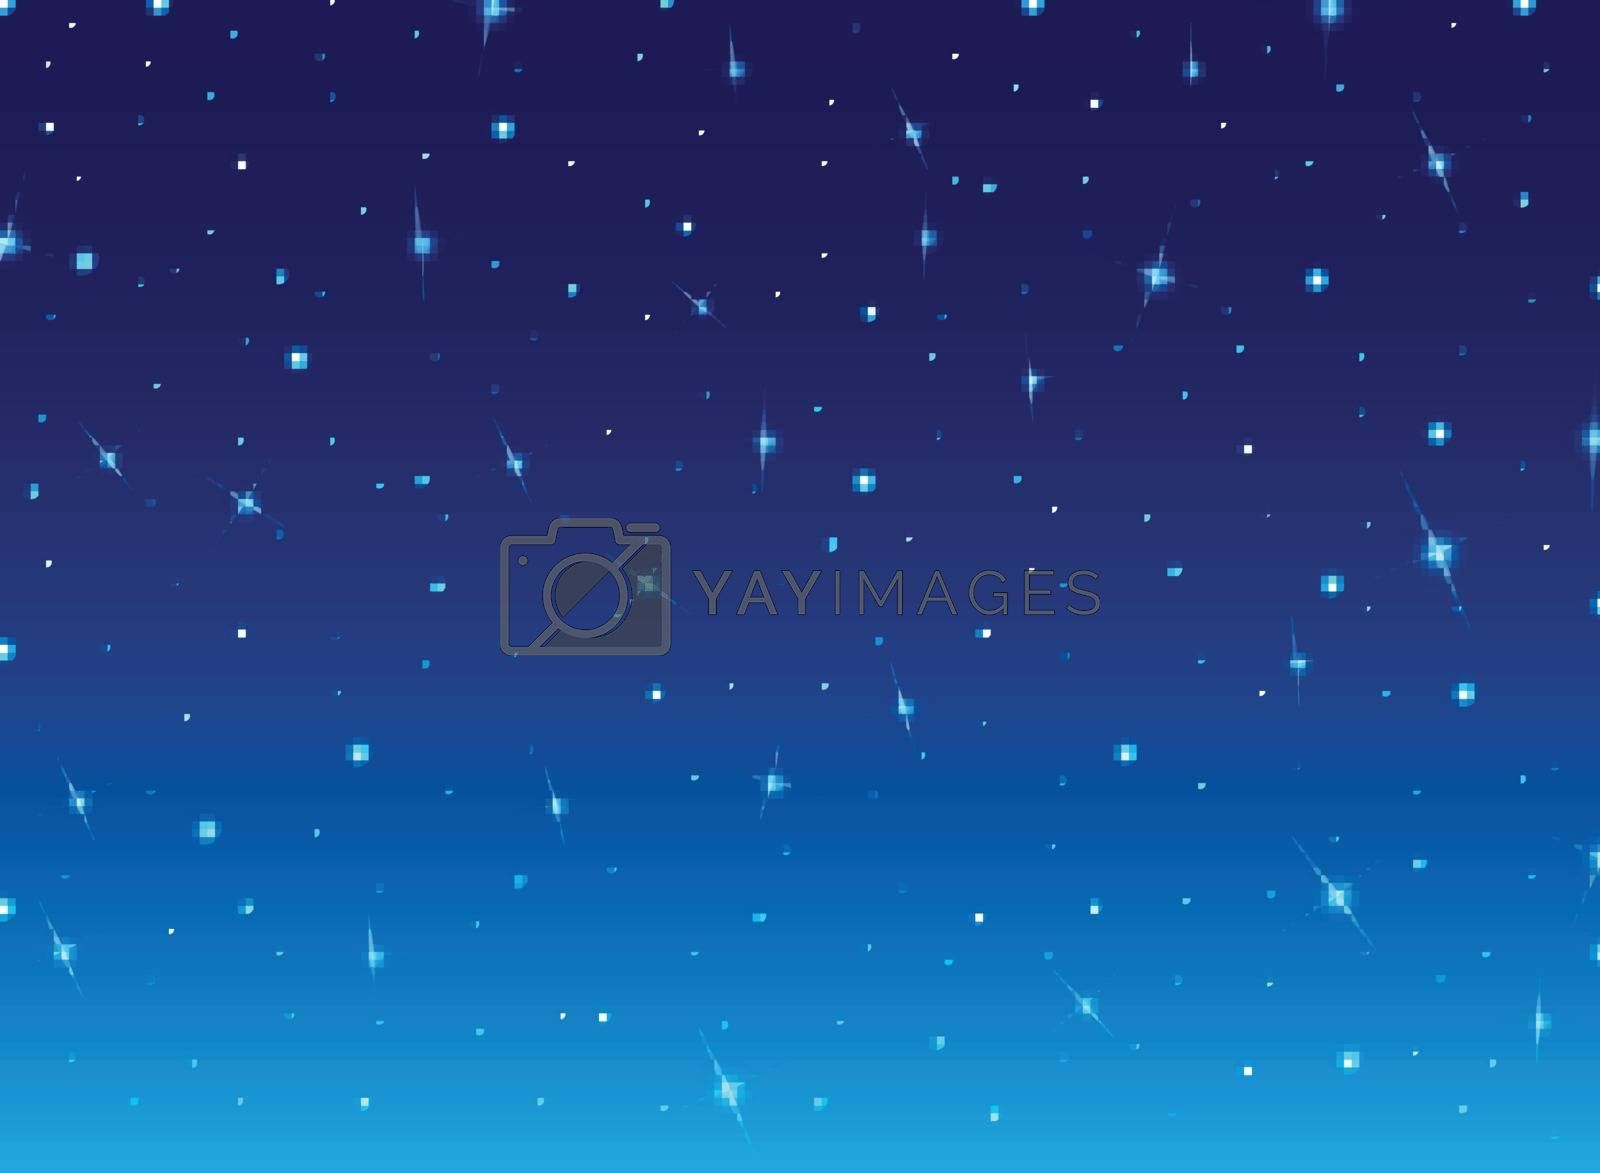 Abstract night blue sky with stars cosmos background. Vector illustration